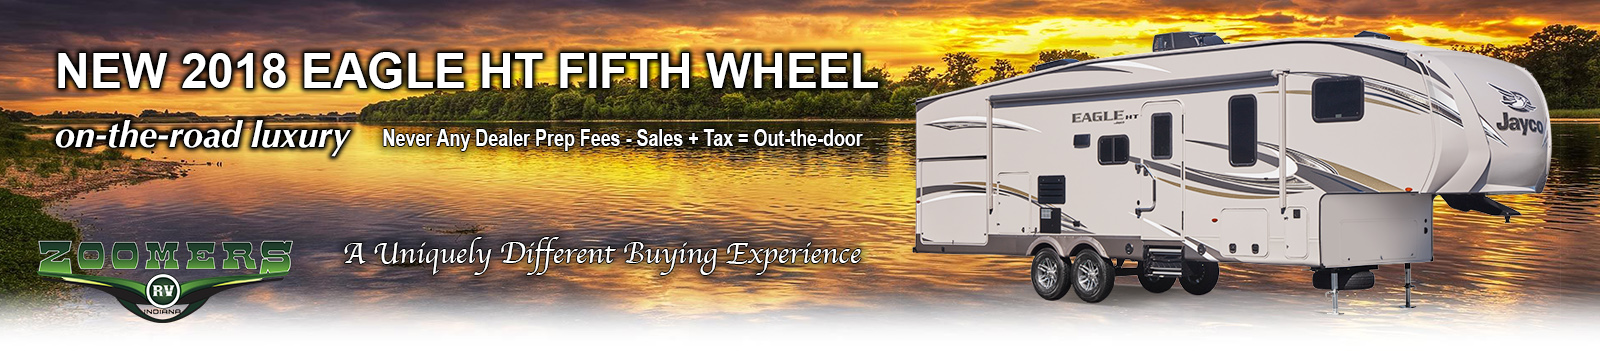 Jayco 2018 %th Wheels